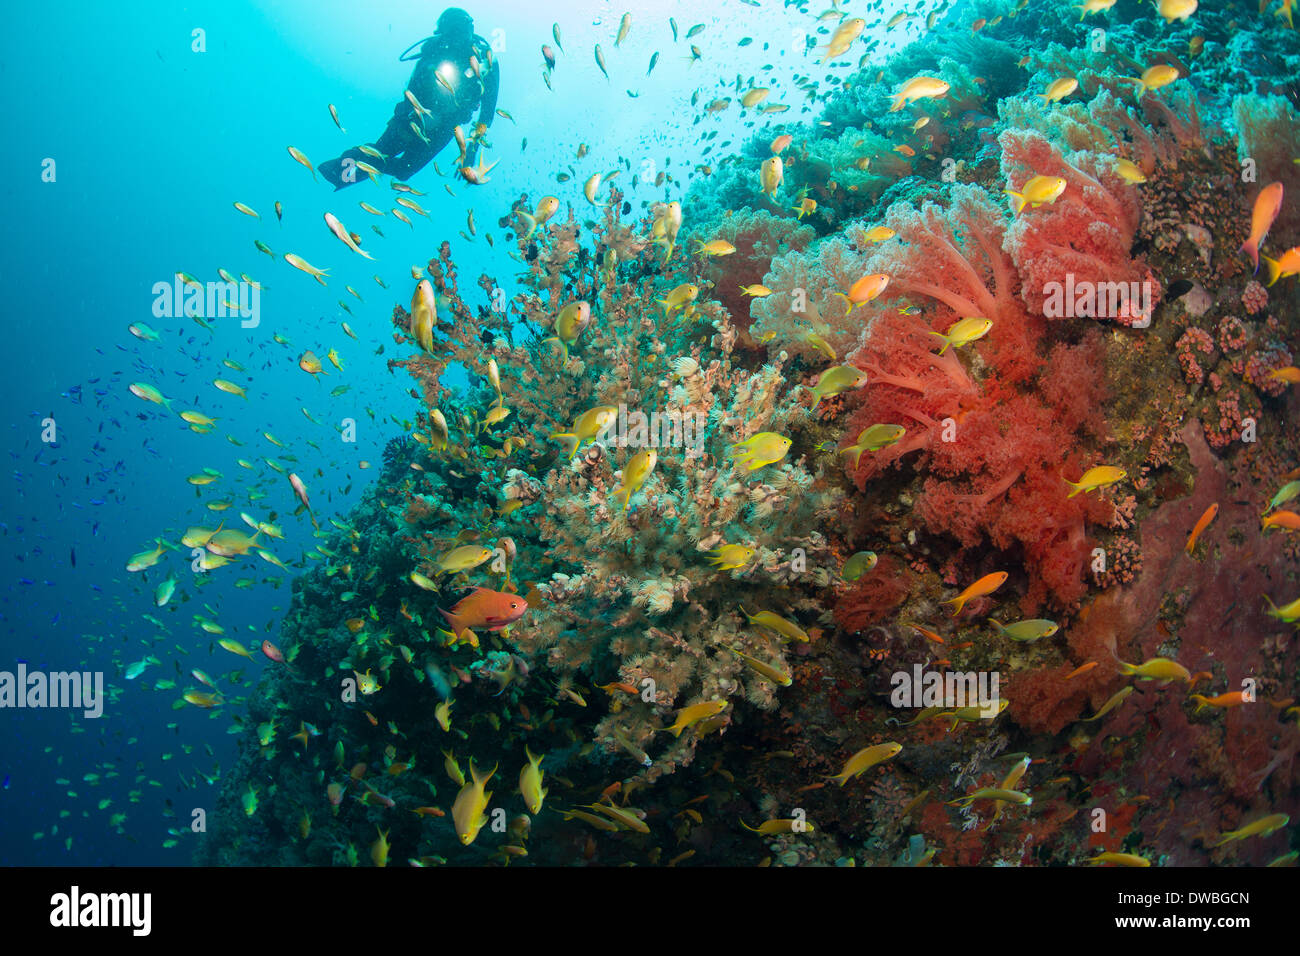 Diver and coral reef. - Stock Image